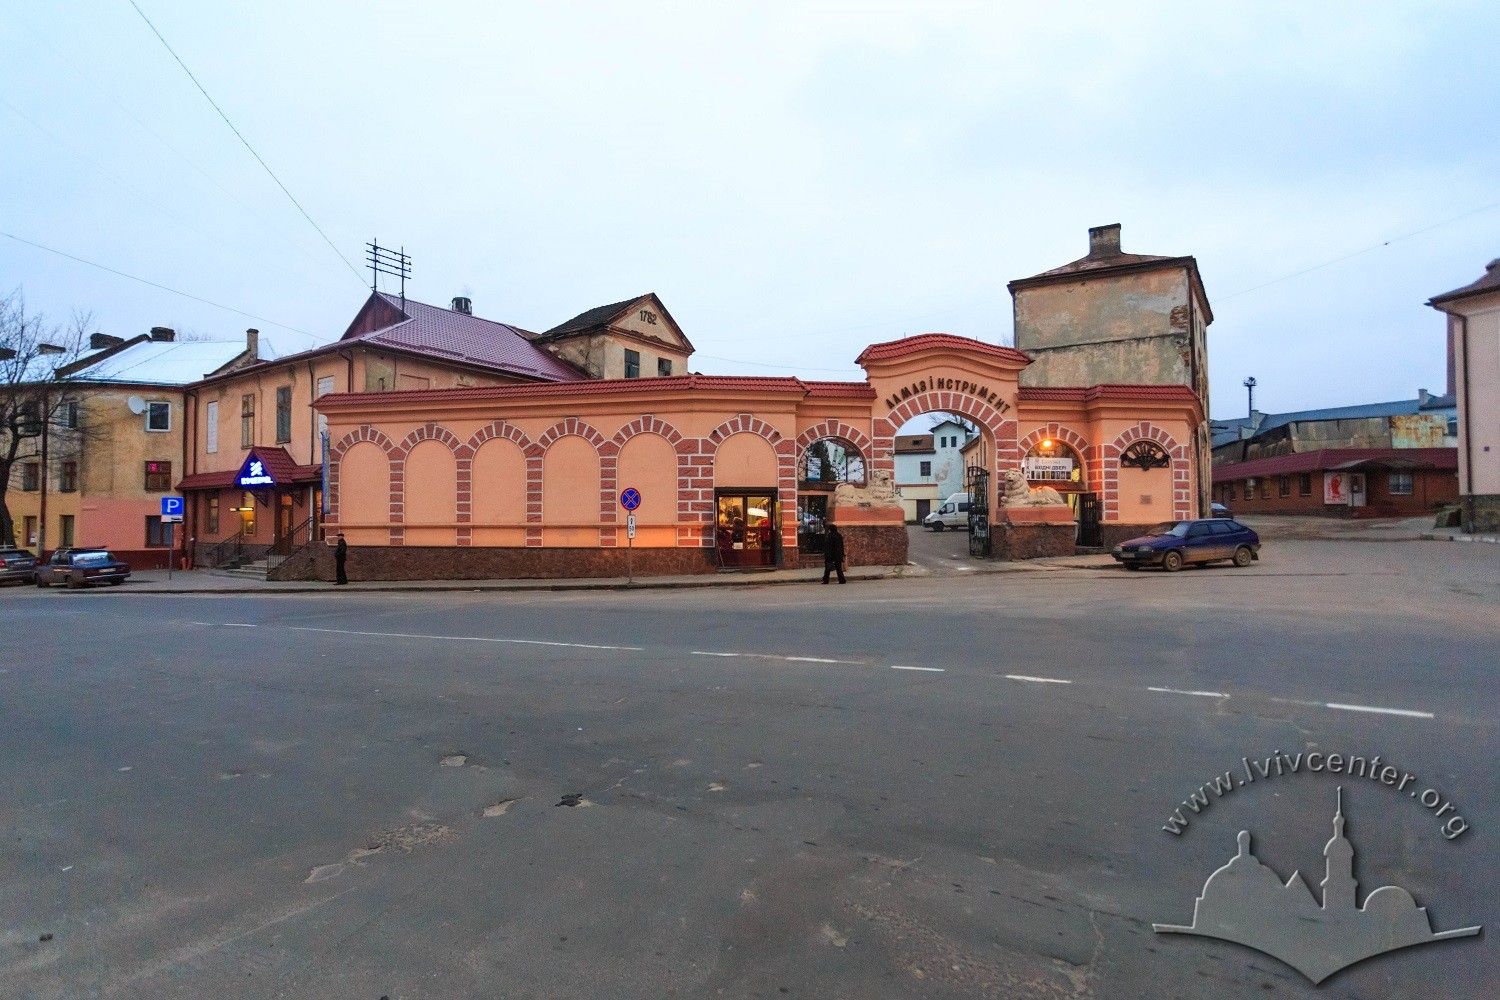 Vul. Khmelnytskoho, 114. General view of the plant from the intersection of vul. Khmelnytskoho and vul. Volynska/Photo courtesy of Nazarii Parkhomyk, 2015